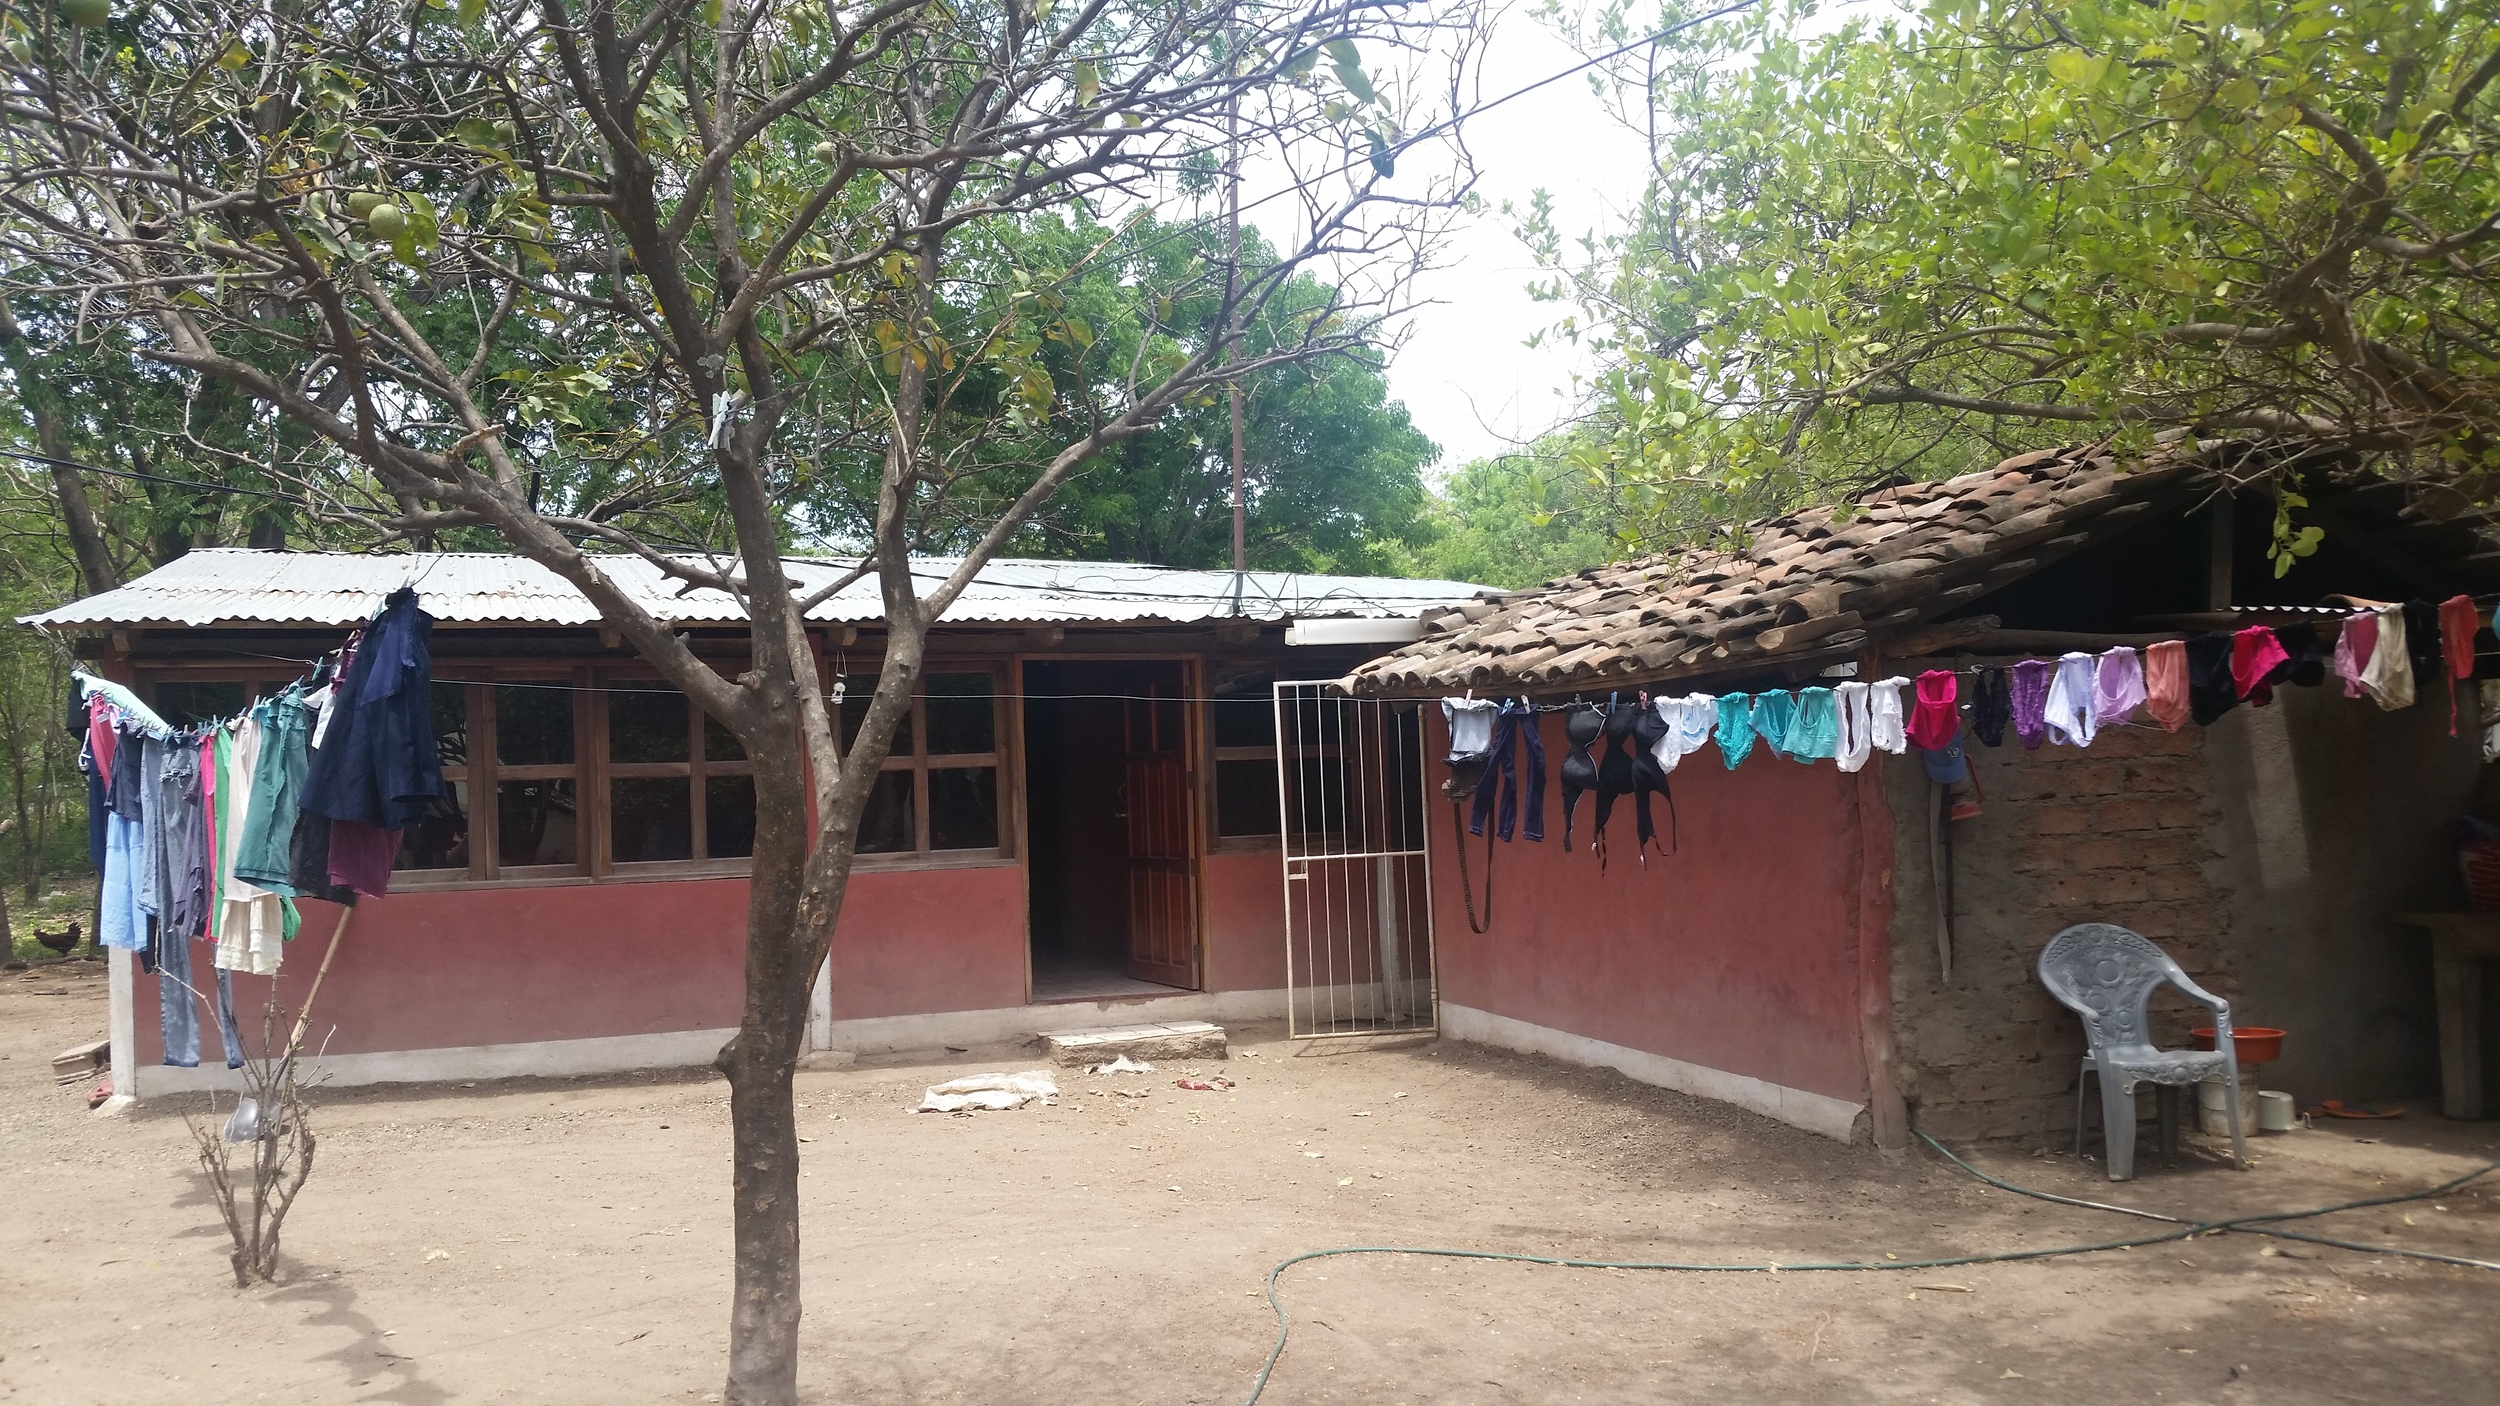 A typical home in Limón.